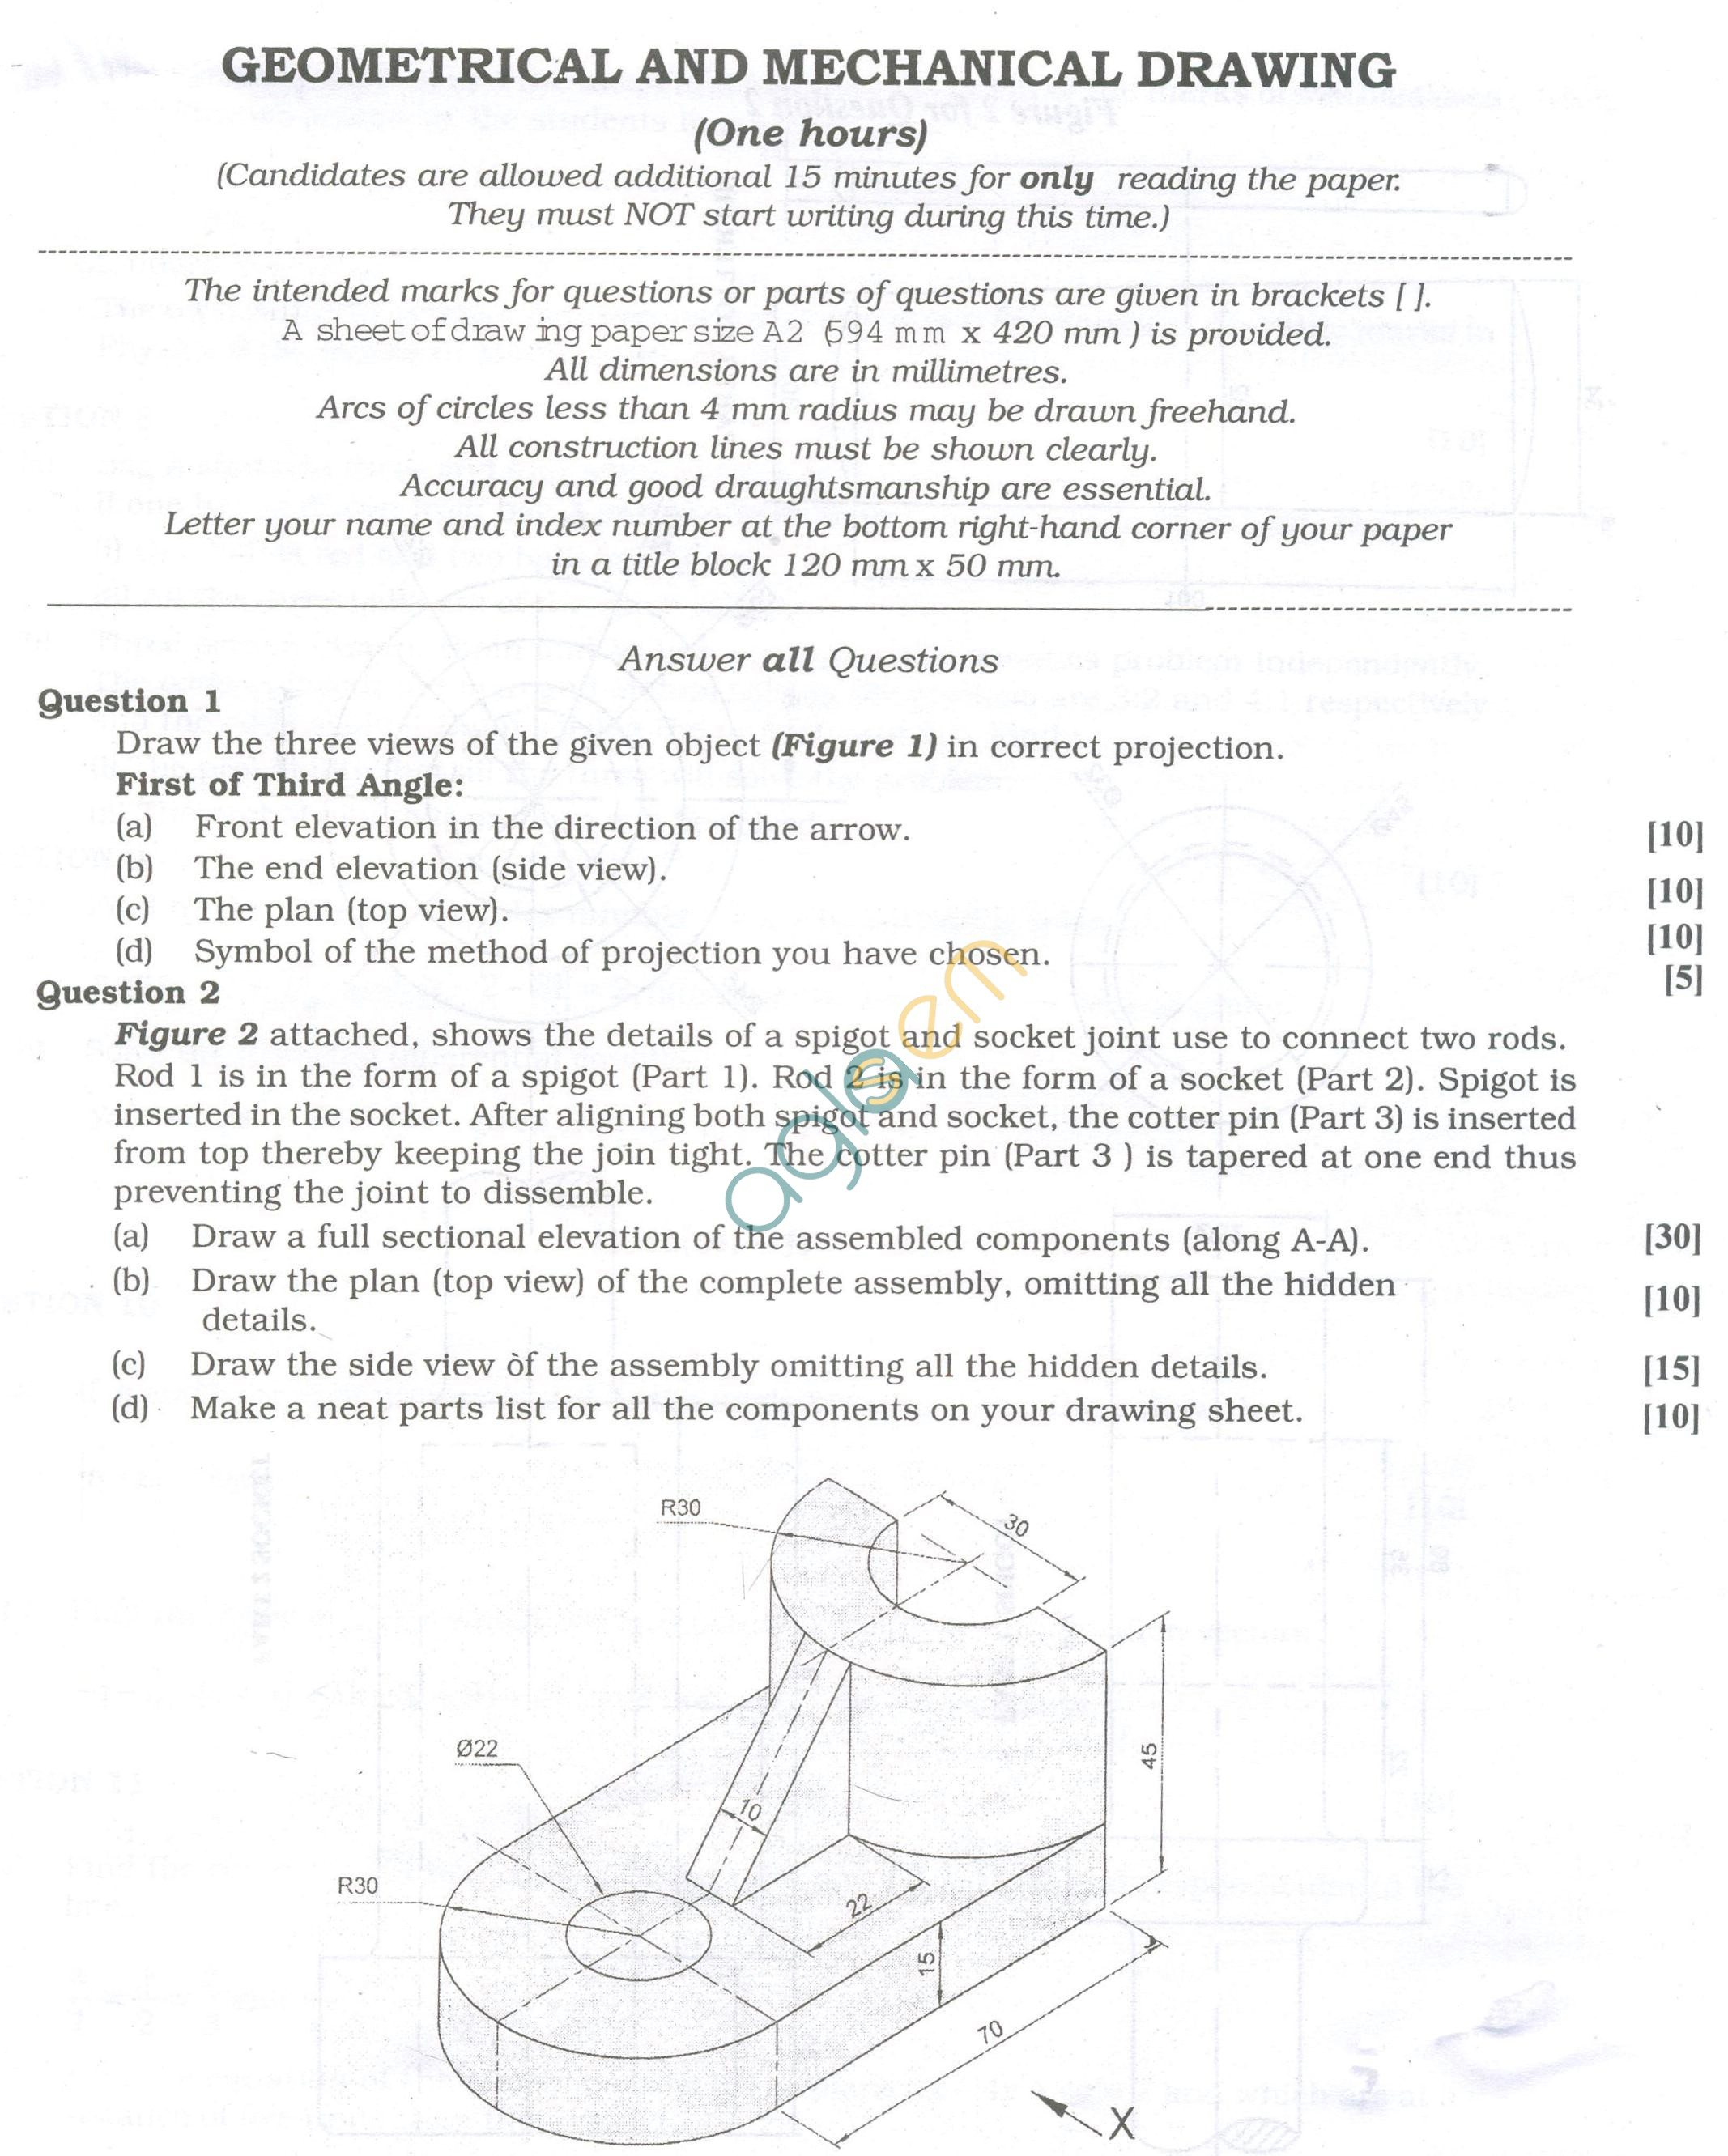 ISC Question Papers 2013 for Class 12 - Geometrical and Mechanical Drawing